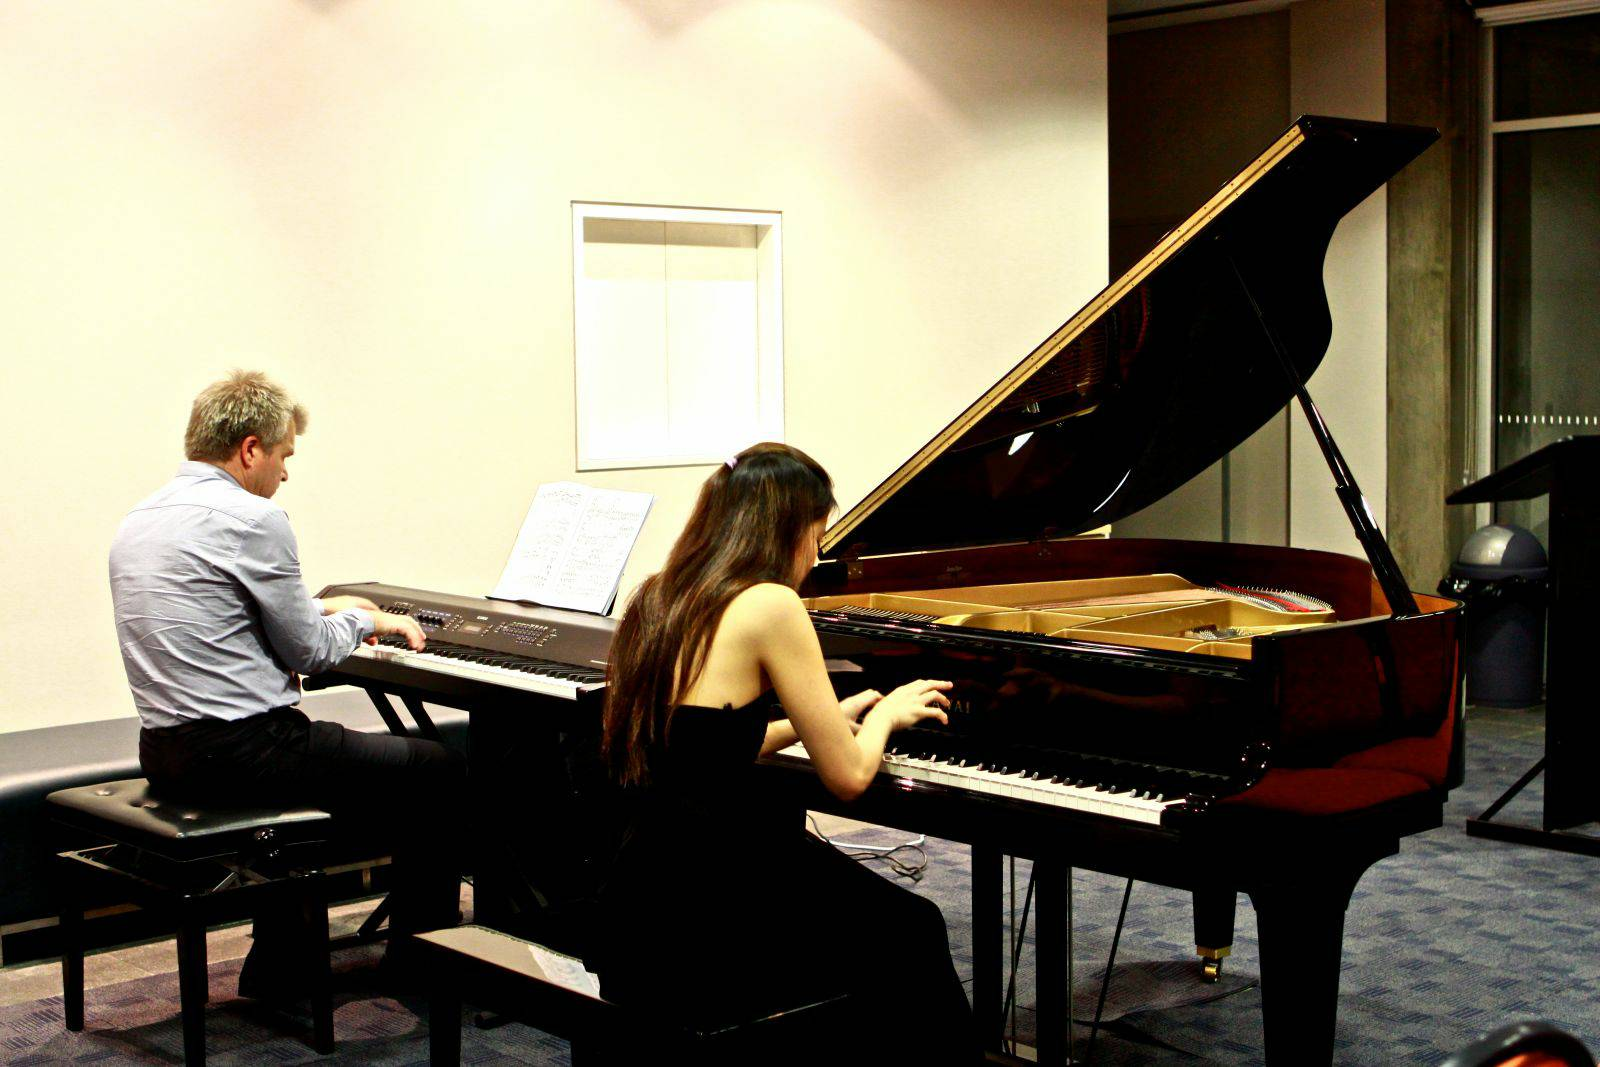 Elina Yasumoto & Phillip Shovk performing Rachmaninoff's Piano Concerto No. 3 in D minor